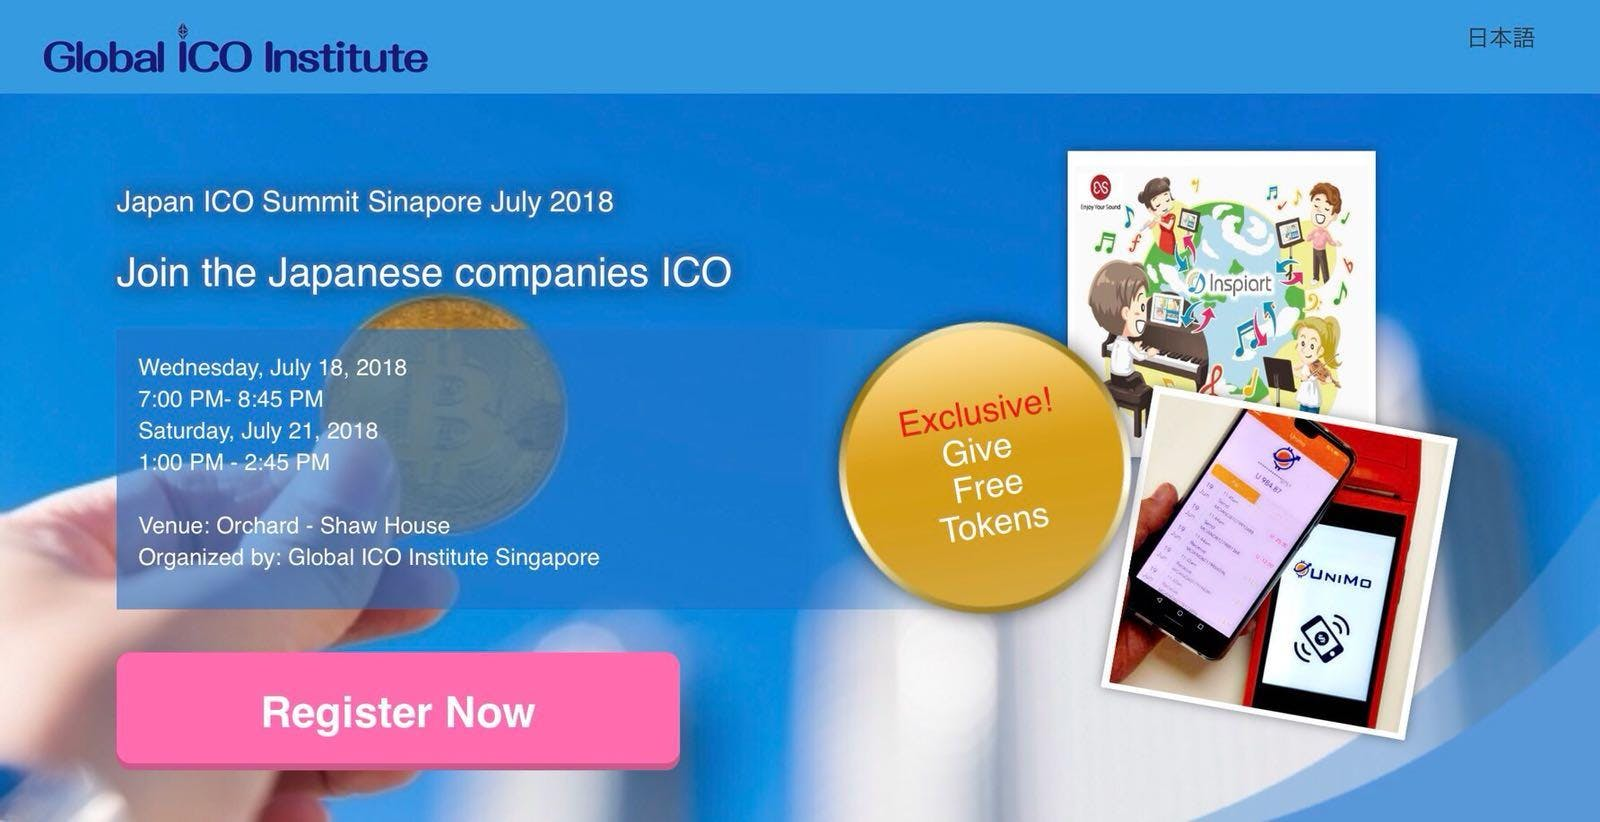 Japan ICO Summit Singapore (July 2018)